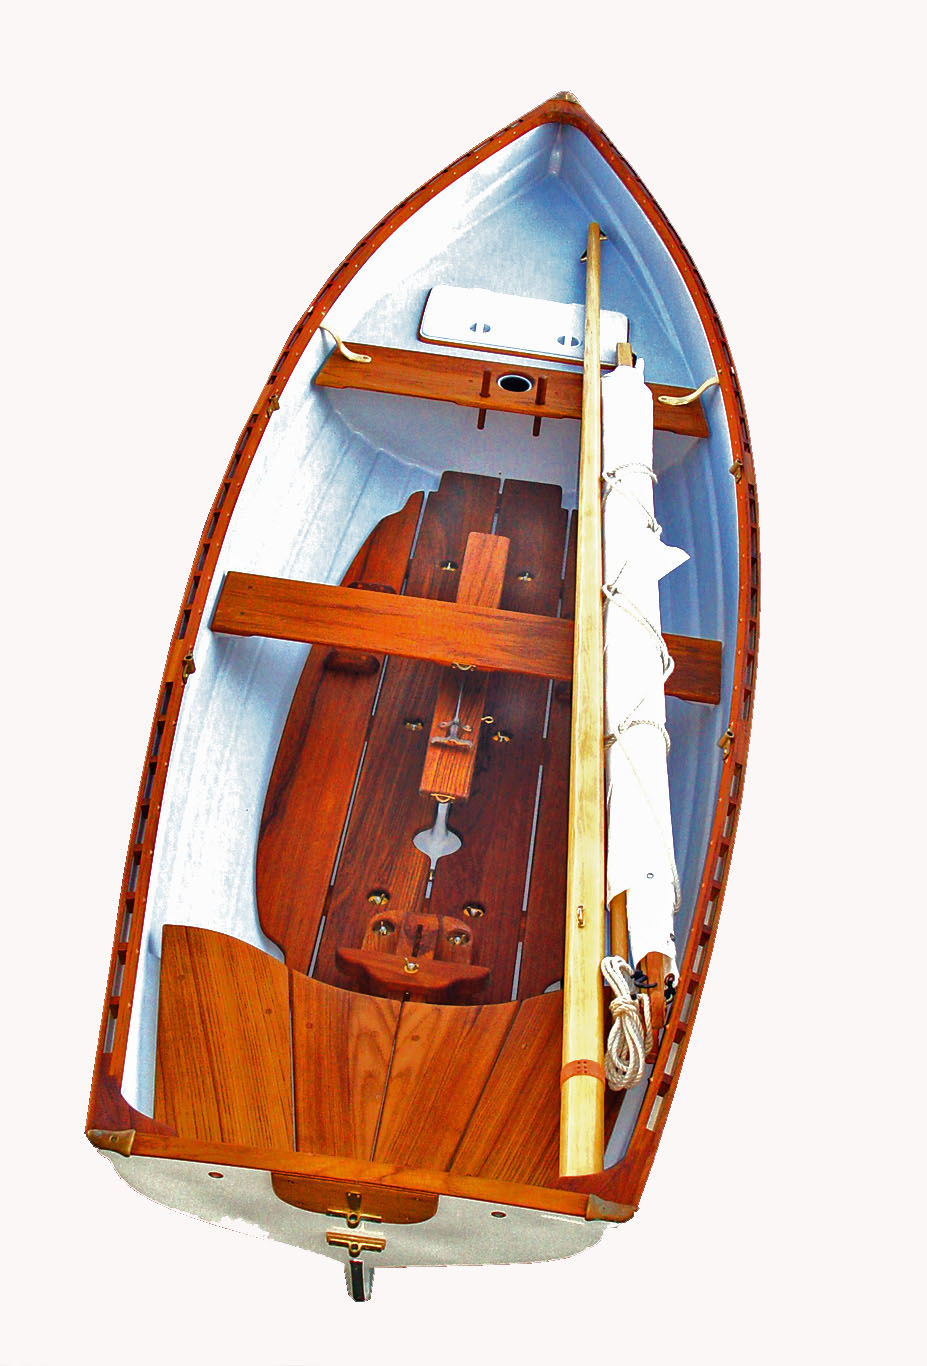 Tyee-Spirit-14-Sailing-Rowboat-with-Optional-Slide-Seat-Whitehall-Rowing-and-Sail